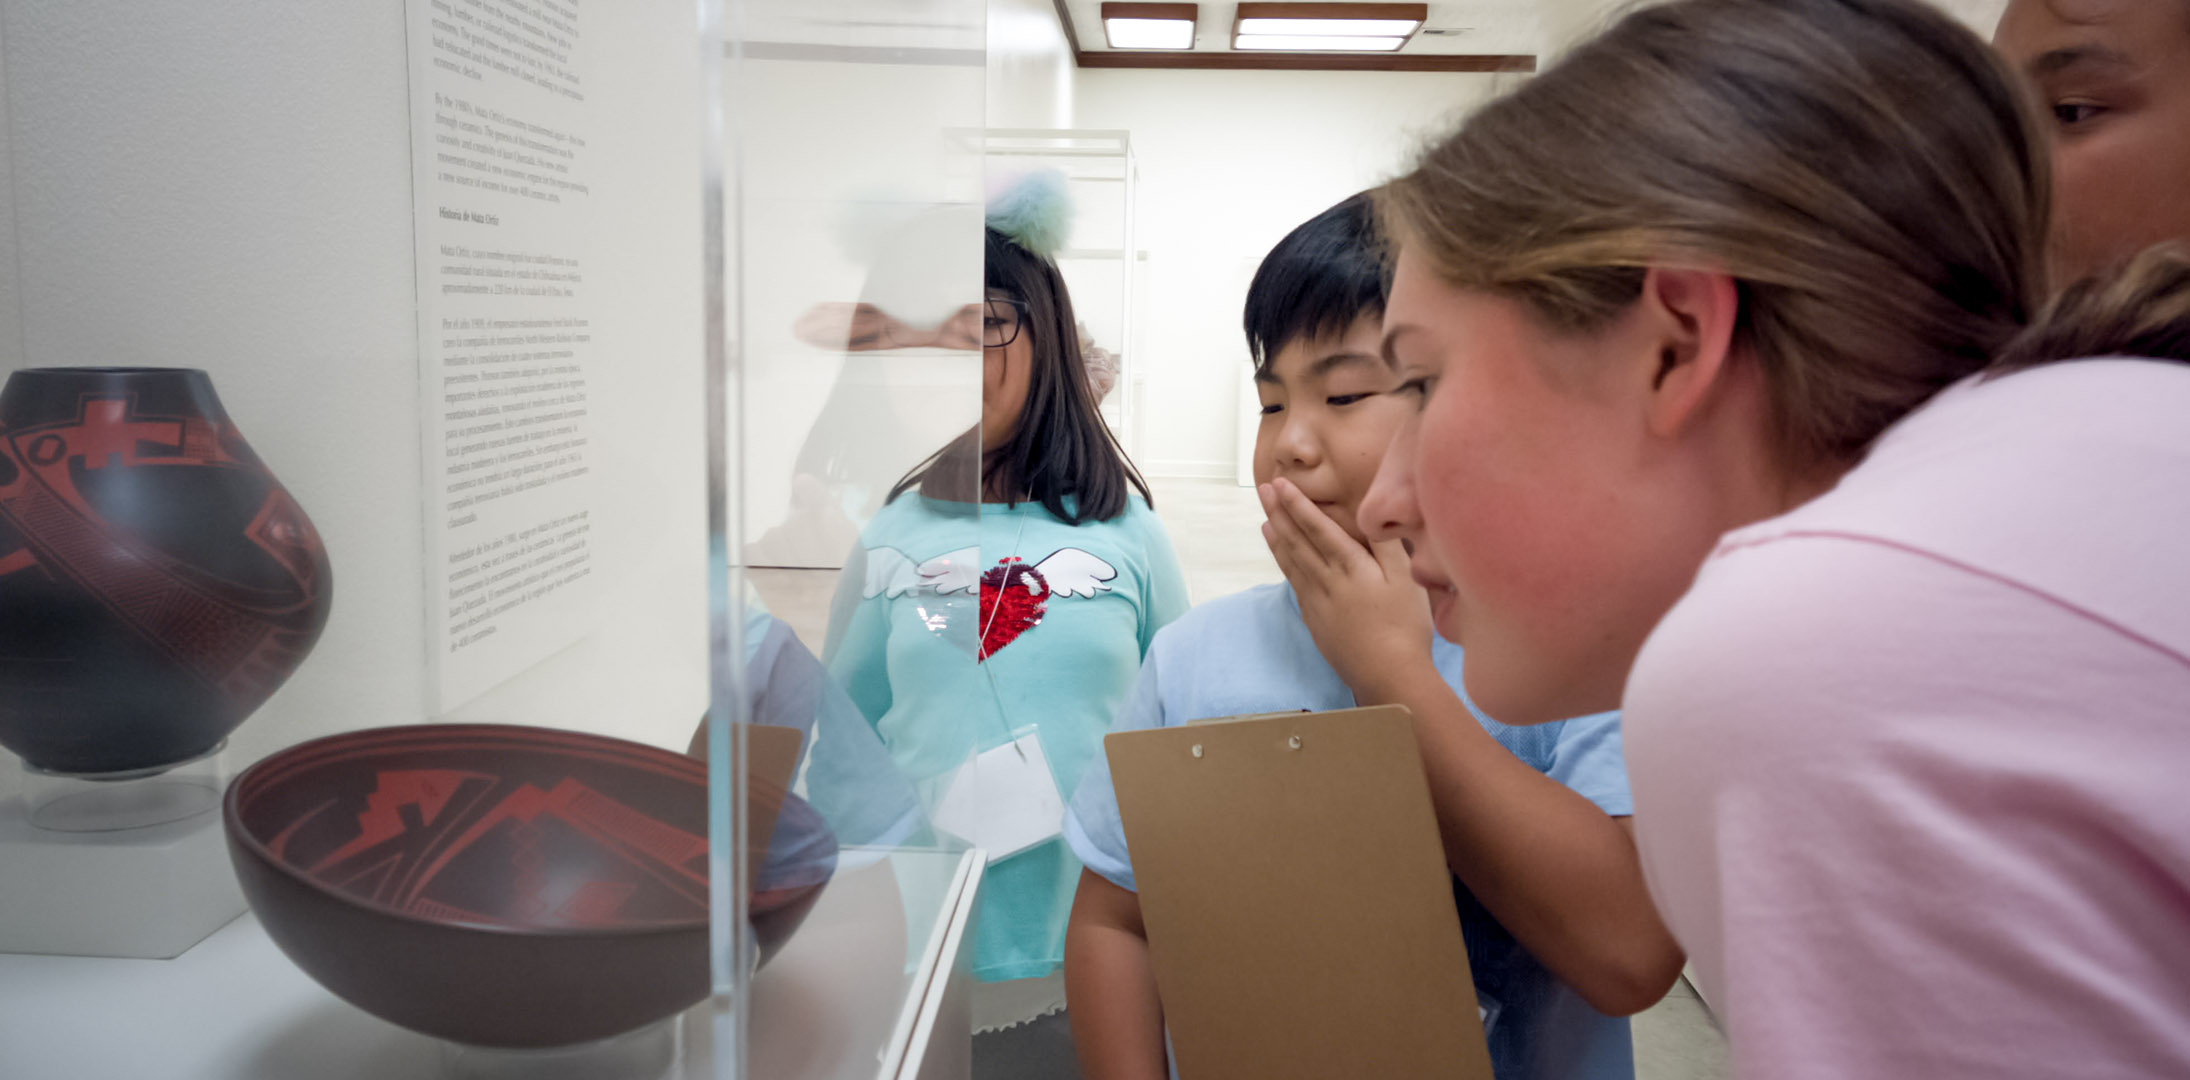 An image of K-12 students touring an Exhibition at AMOCA